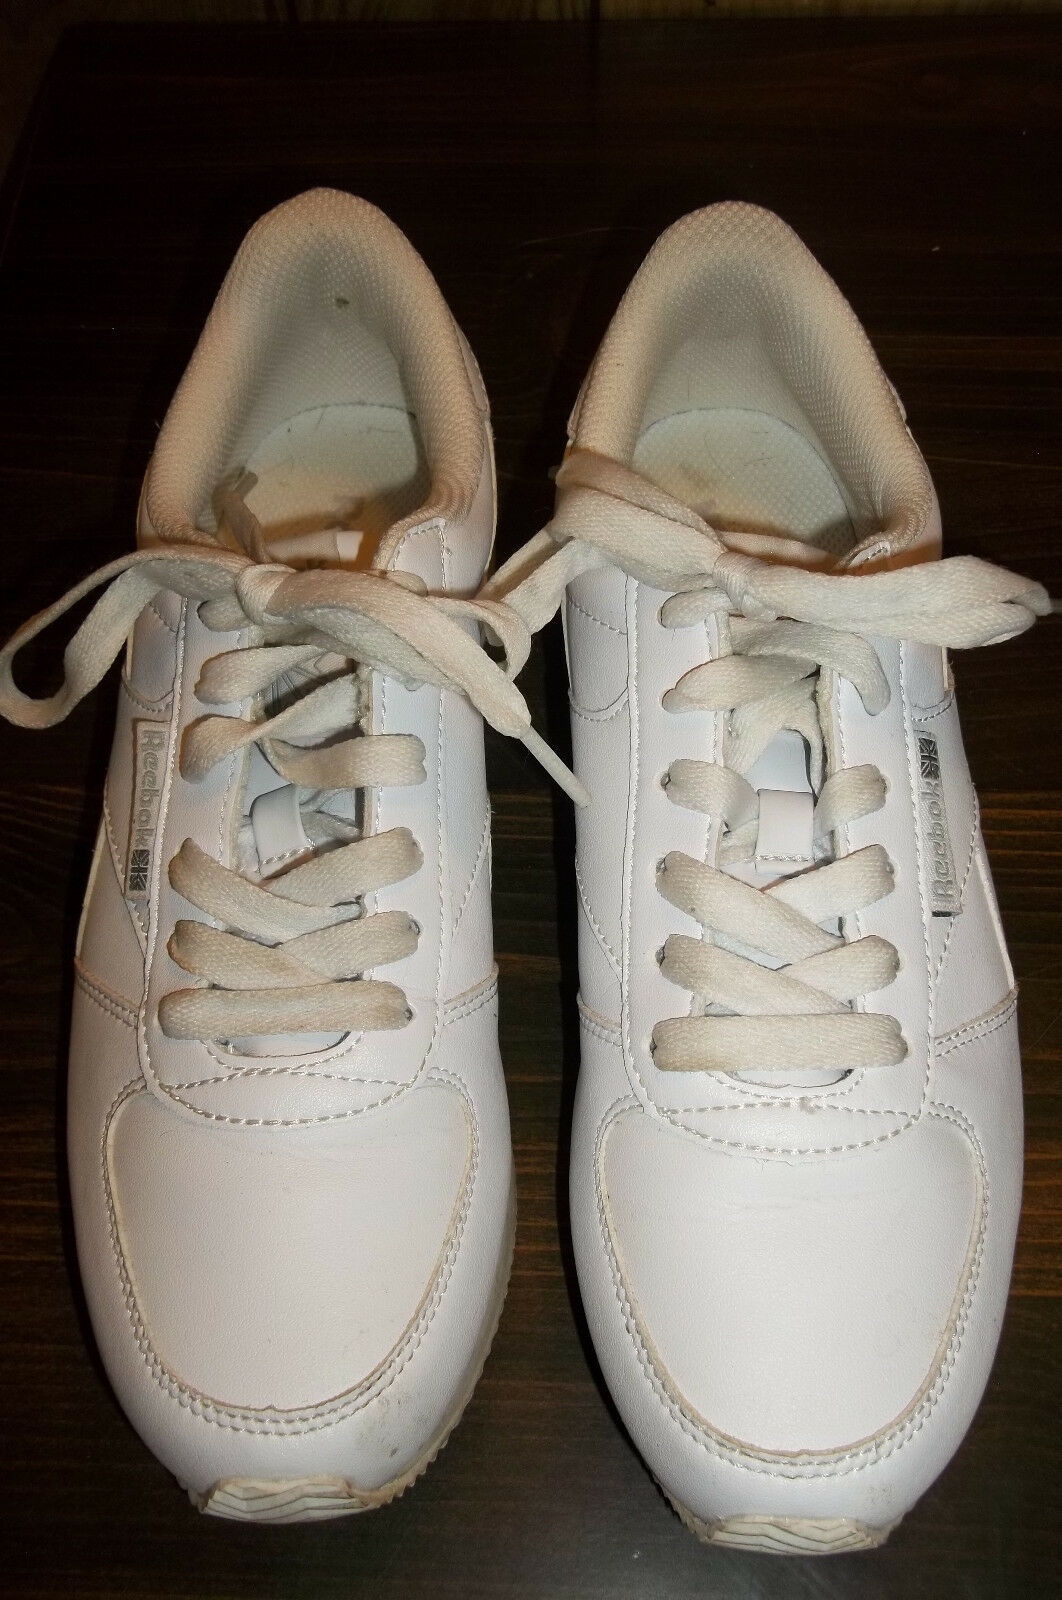 Woman's Reebox White Classic Jogger Sneaker sz - 8 1 2 With Box